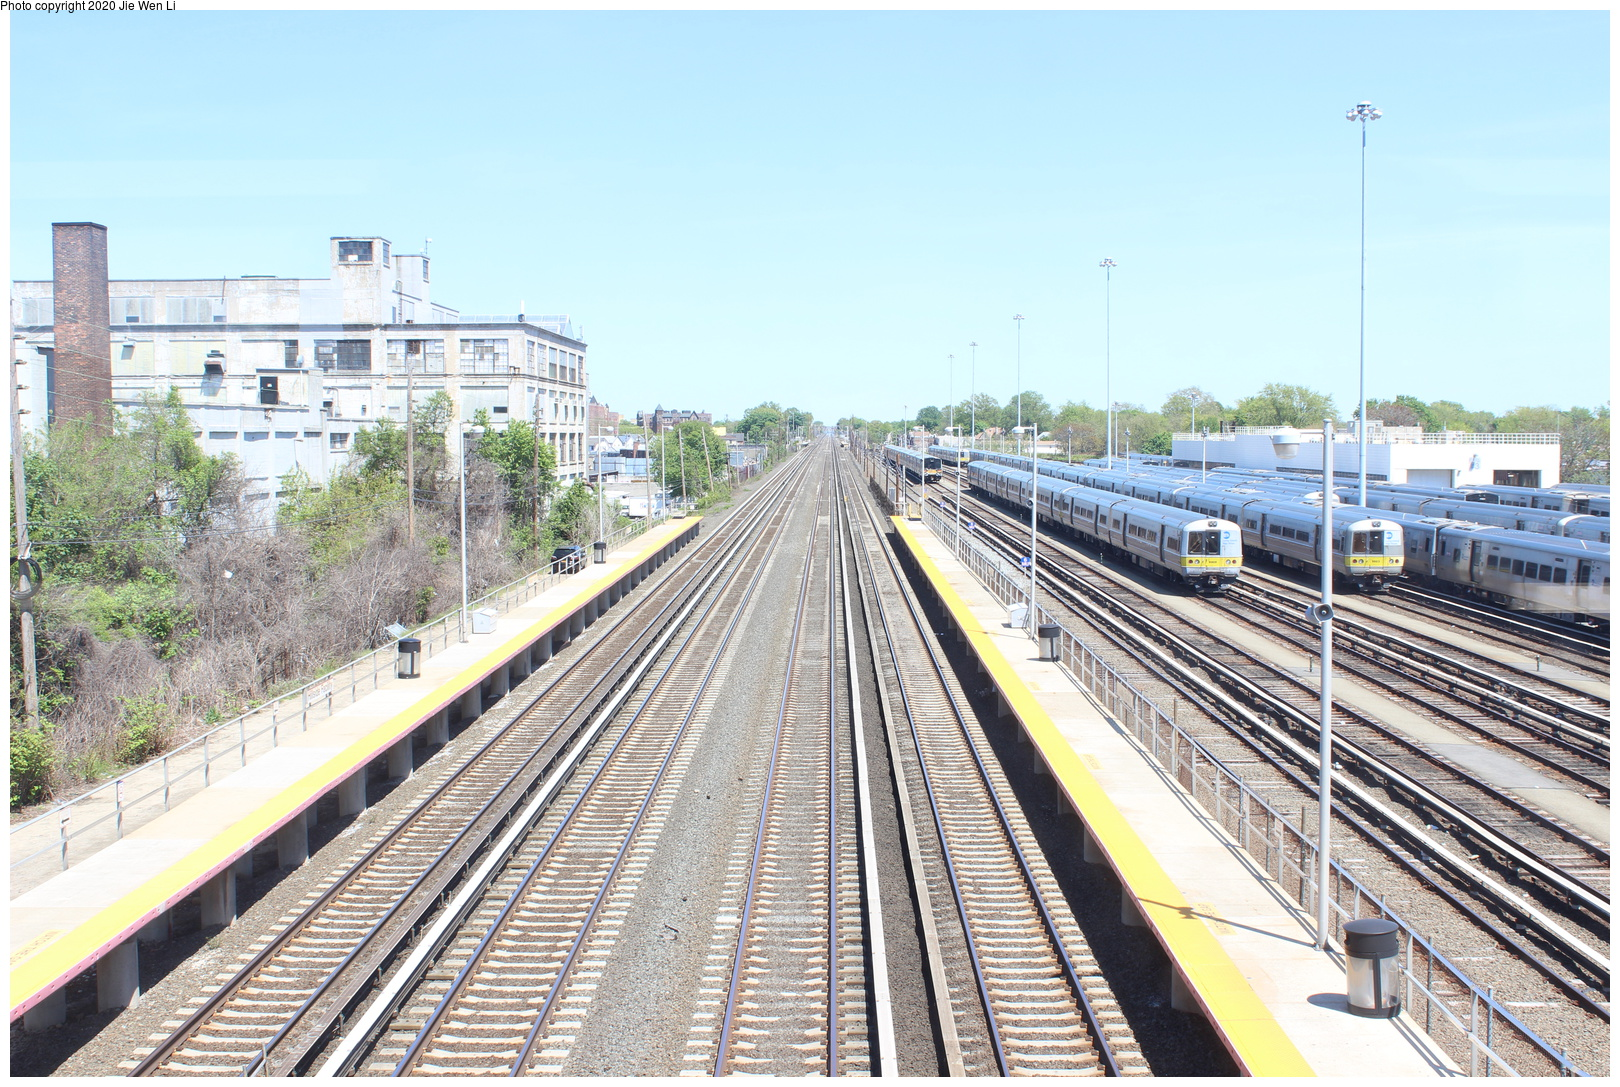 (877k, 1620x1087)<br><b>Country:</b> United States<br><b>City:</b> New York<br><b>System:</b> Long Island Rail Road<br><b>Location:</b> LIRR Holban-Hillside Maint. Complex/Yard<br><b>Photo by:</b> Jie Wen Li<br><b>Date:</b> 5/11/2019<br><b>Notes:</b> Shop tour sponsored by ERA. Overpass view towards Hollis.<br><b>Viewed (this week/total):</b> 3 / 51